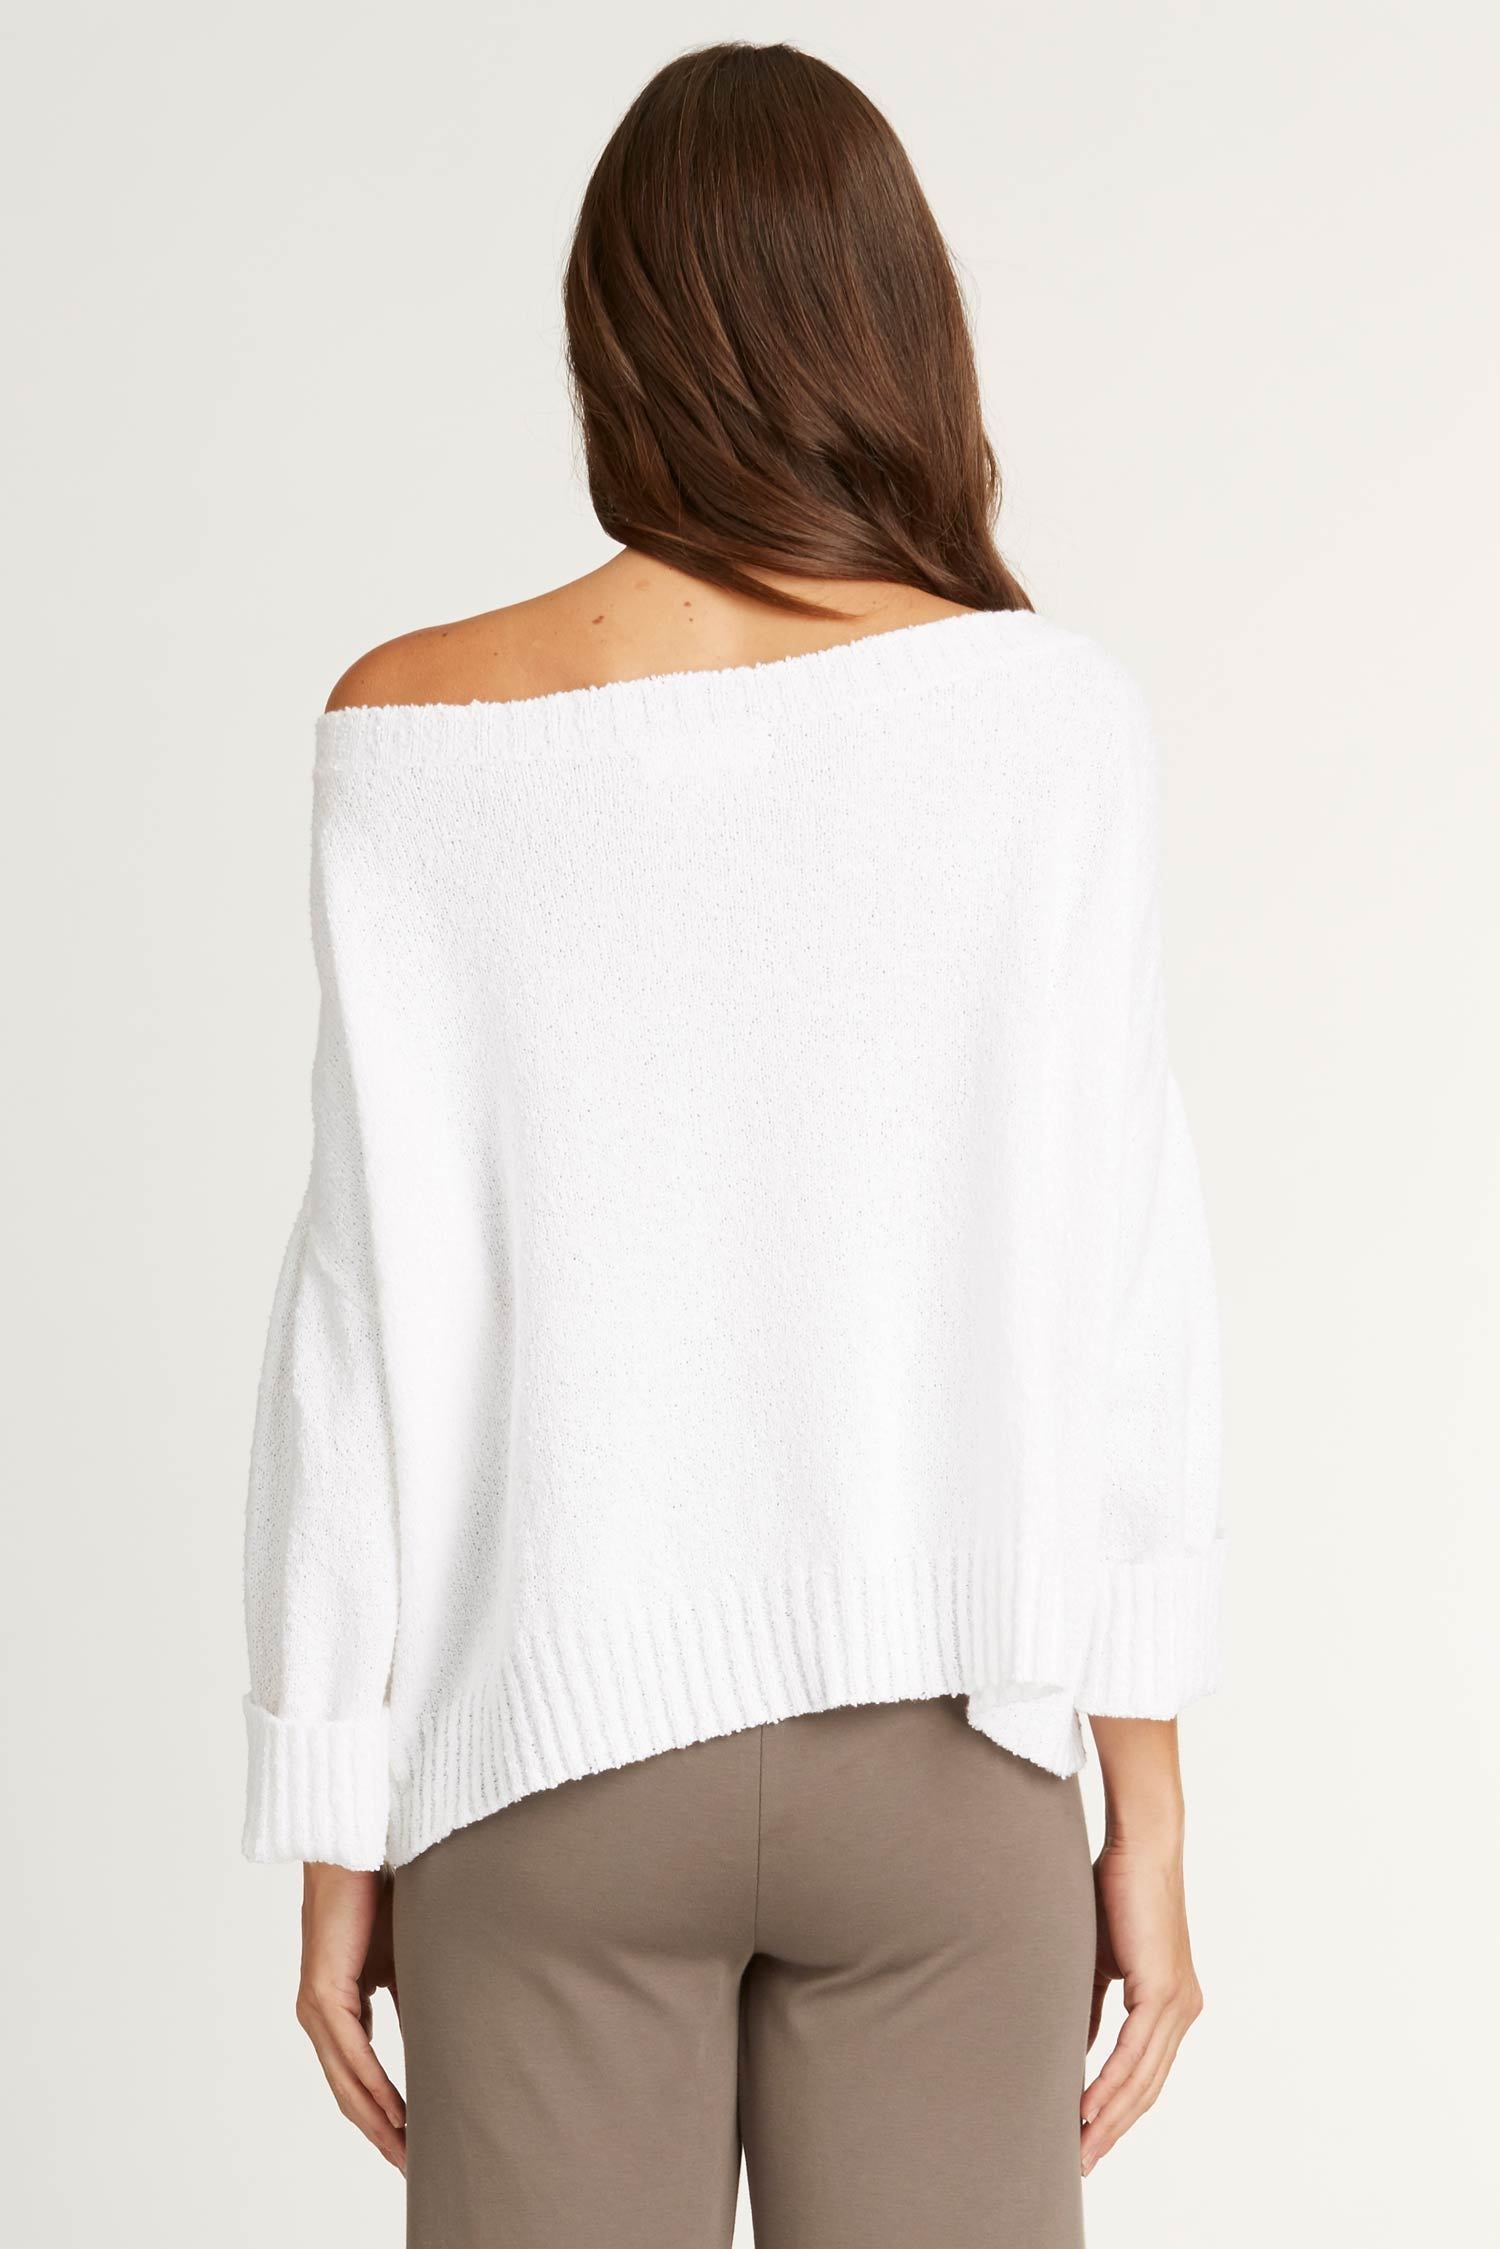 Womens Organic Cotton Sweater | White Off Shoulder Boucle Knit Pullover